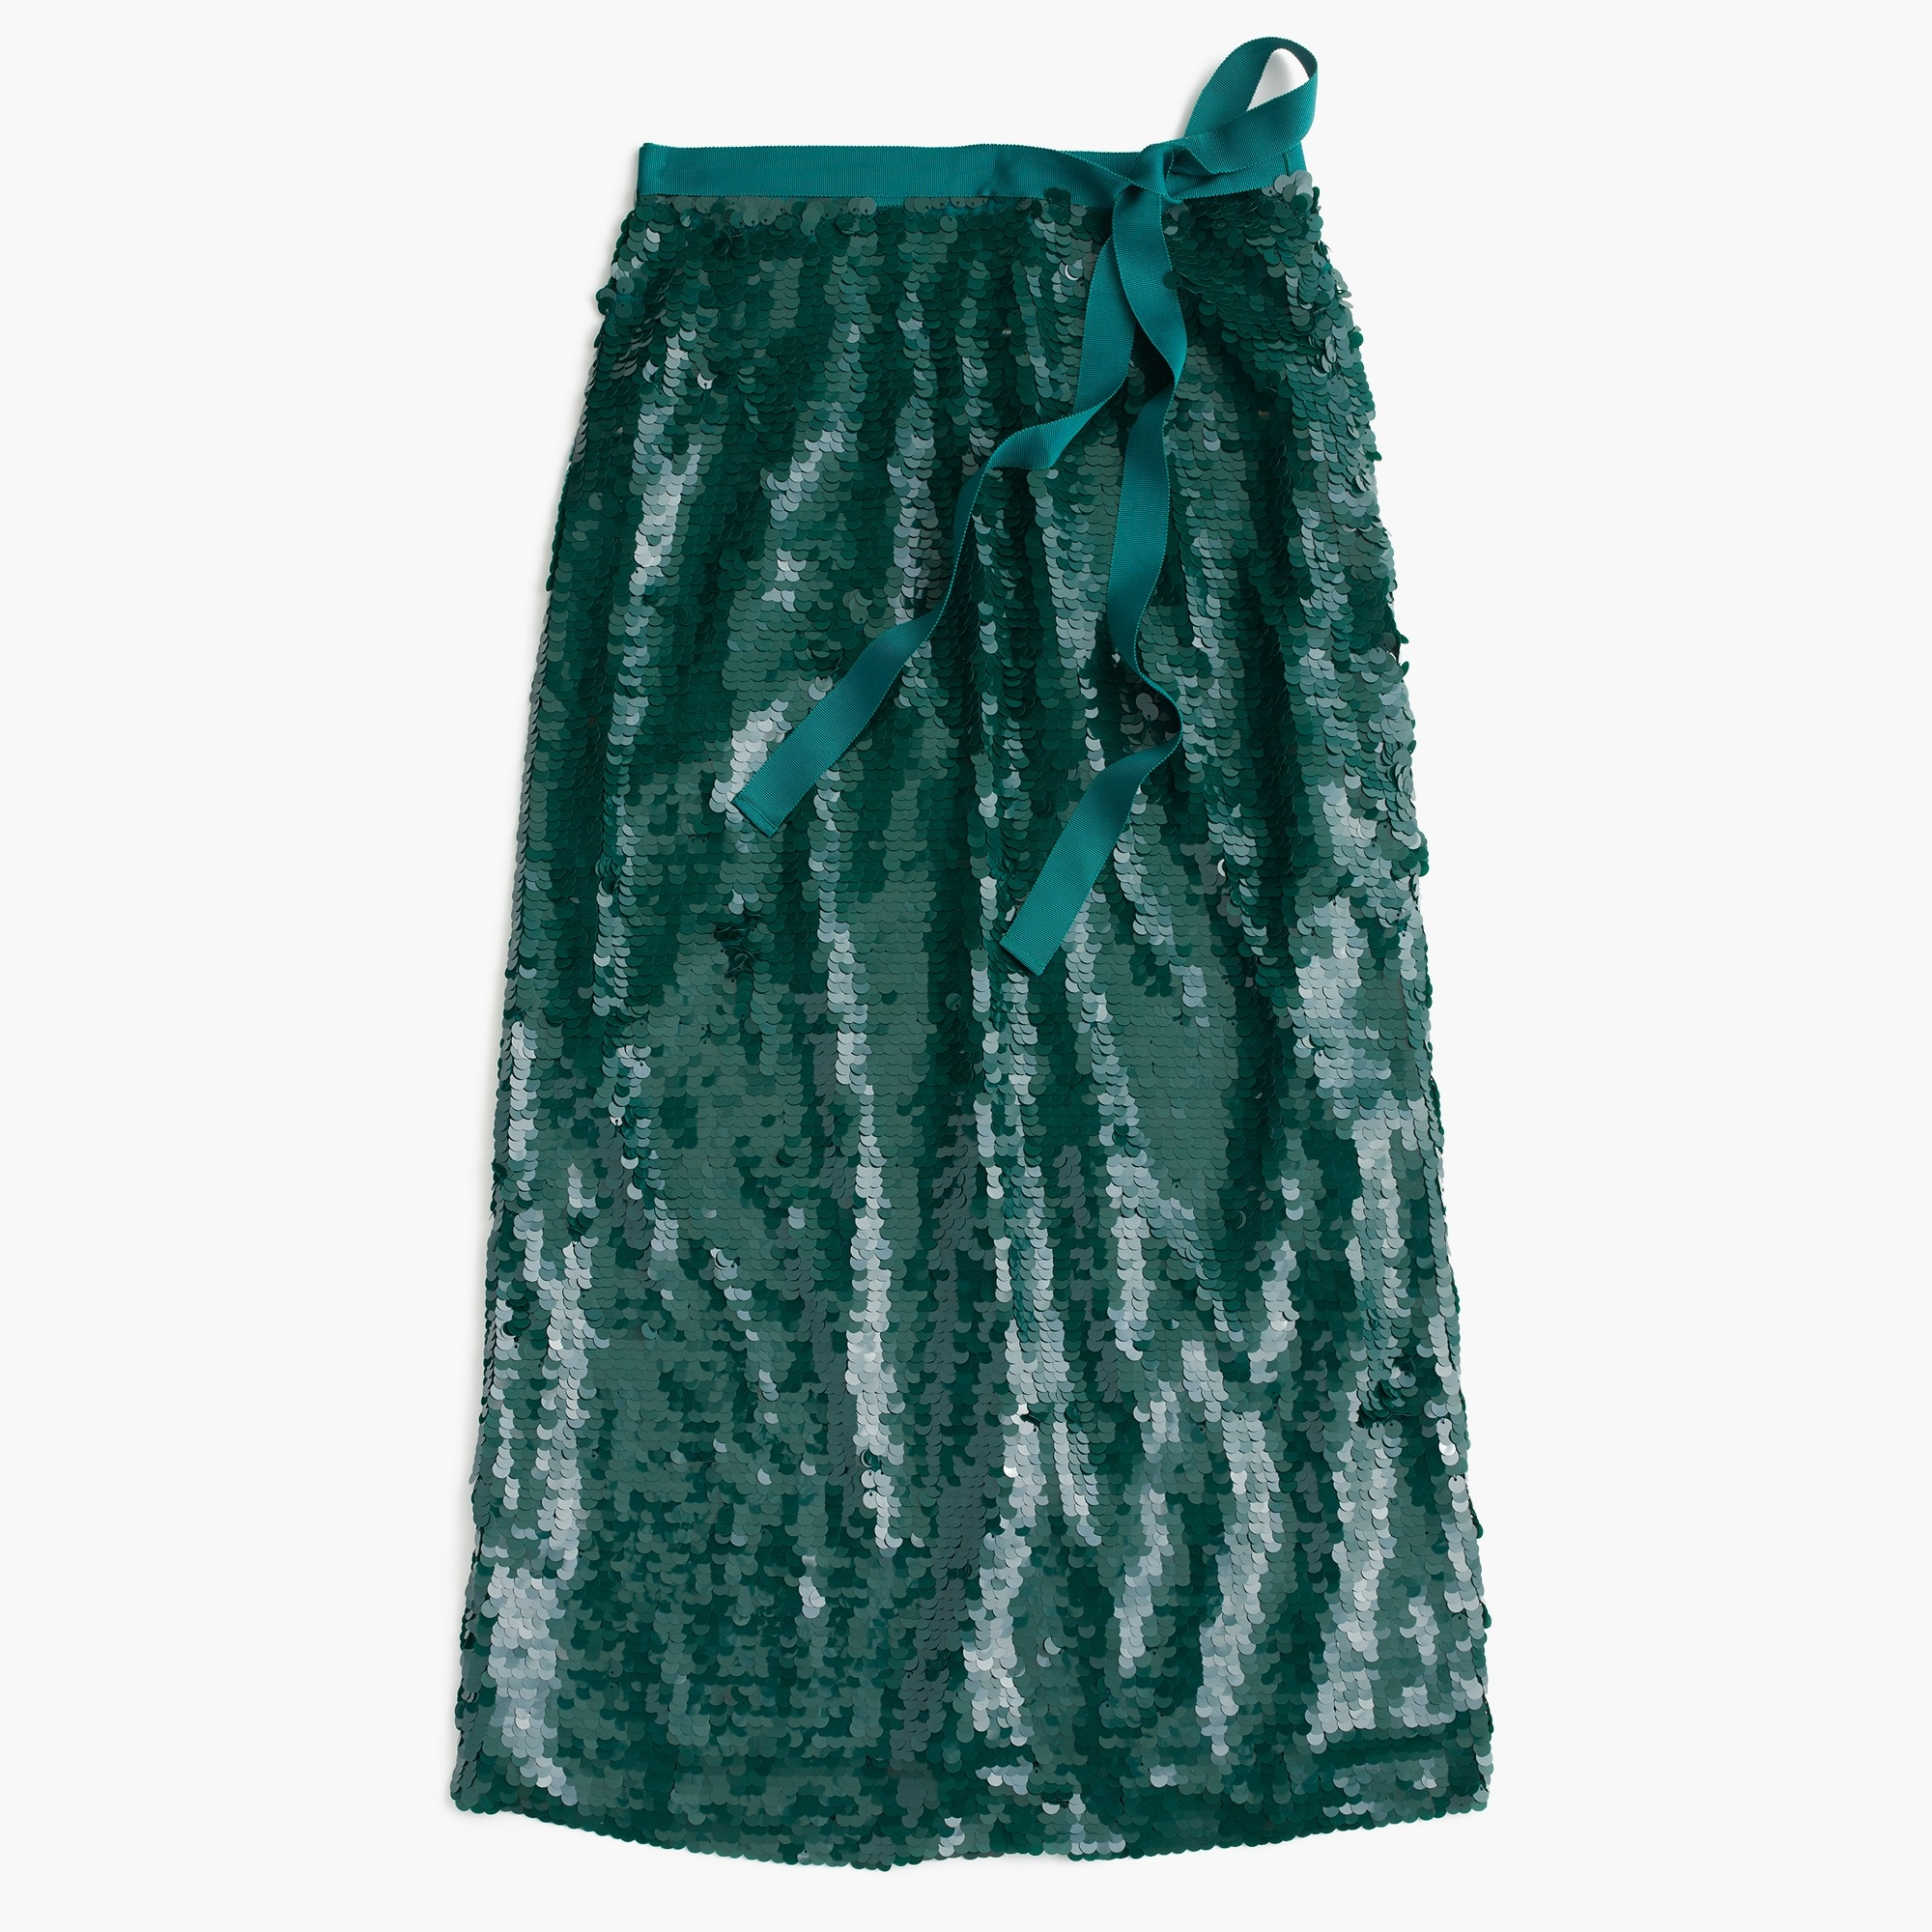 Sequin midi skirt with tie